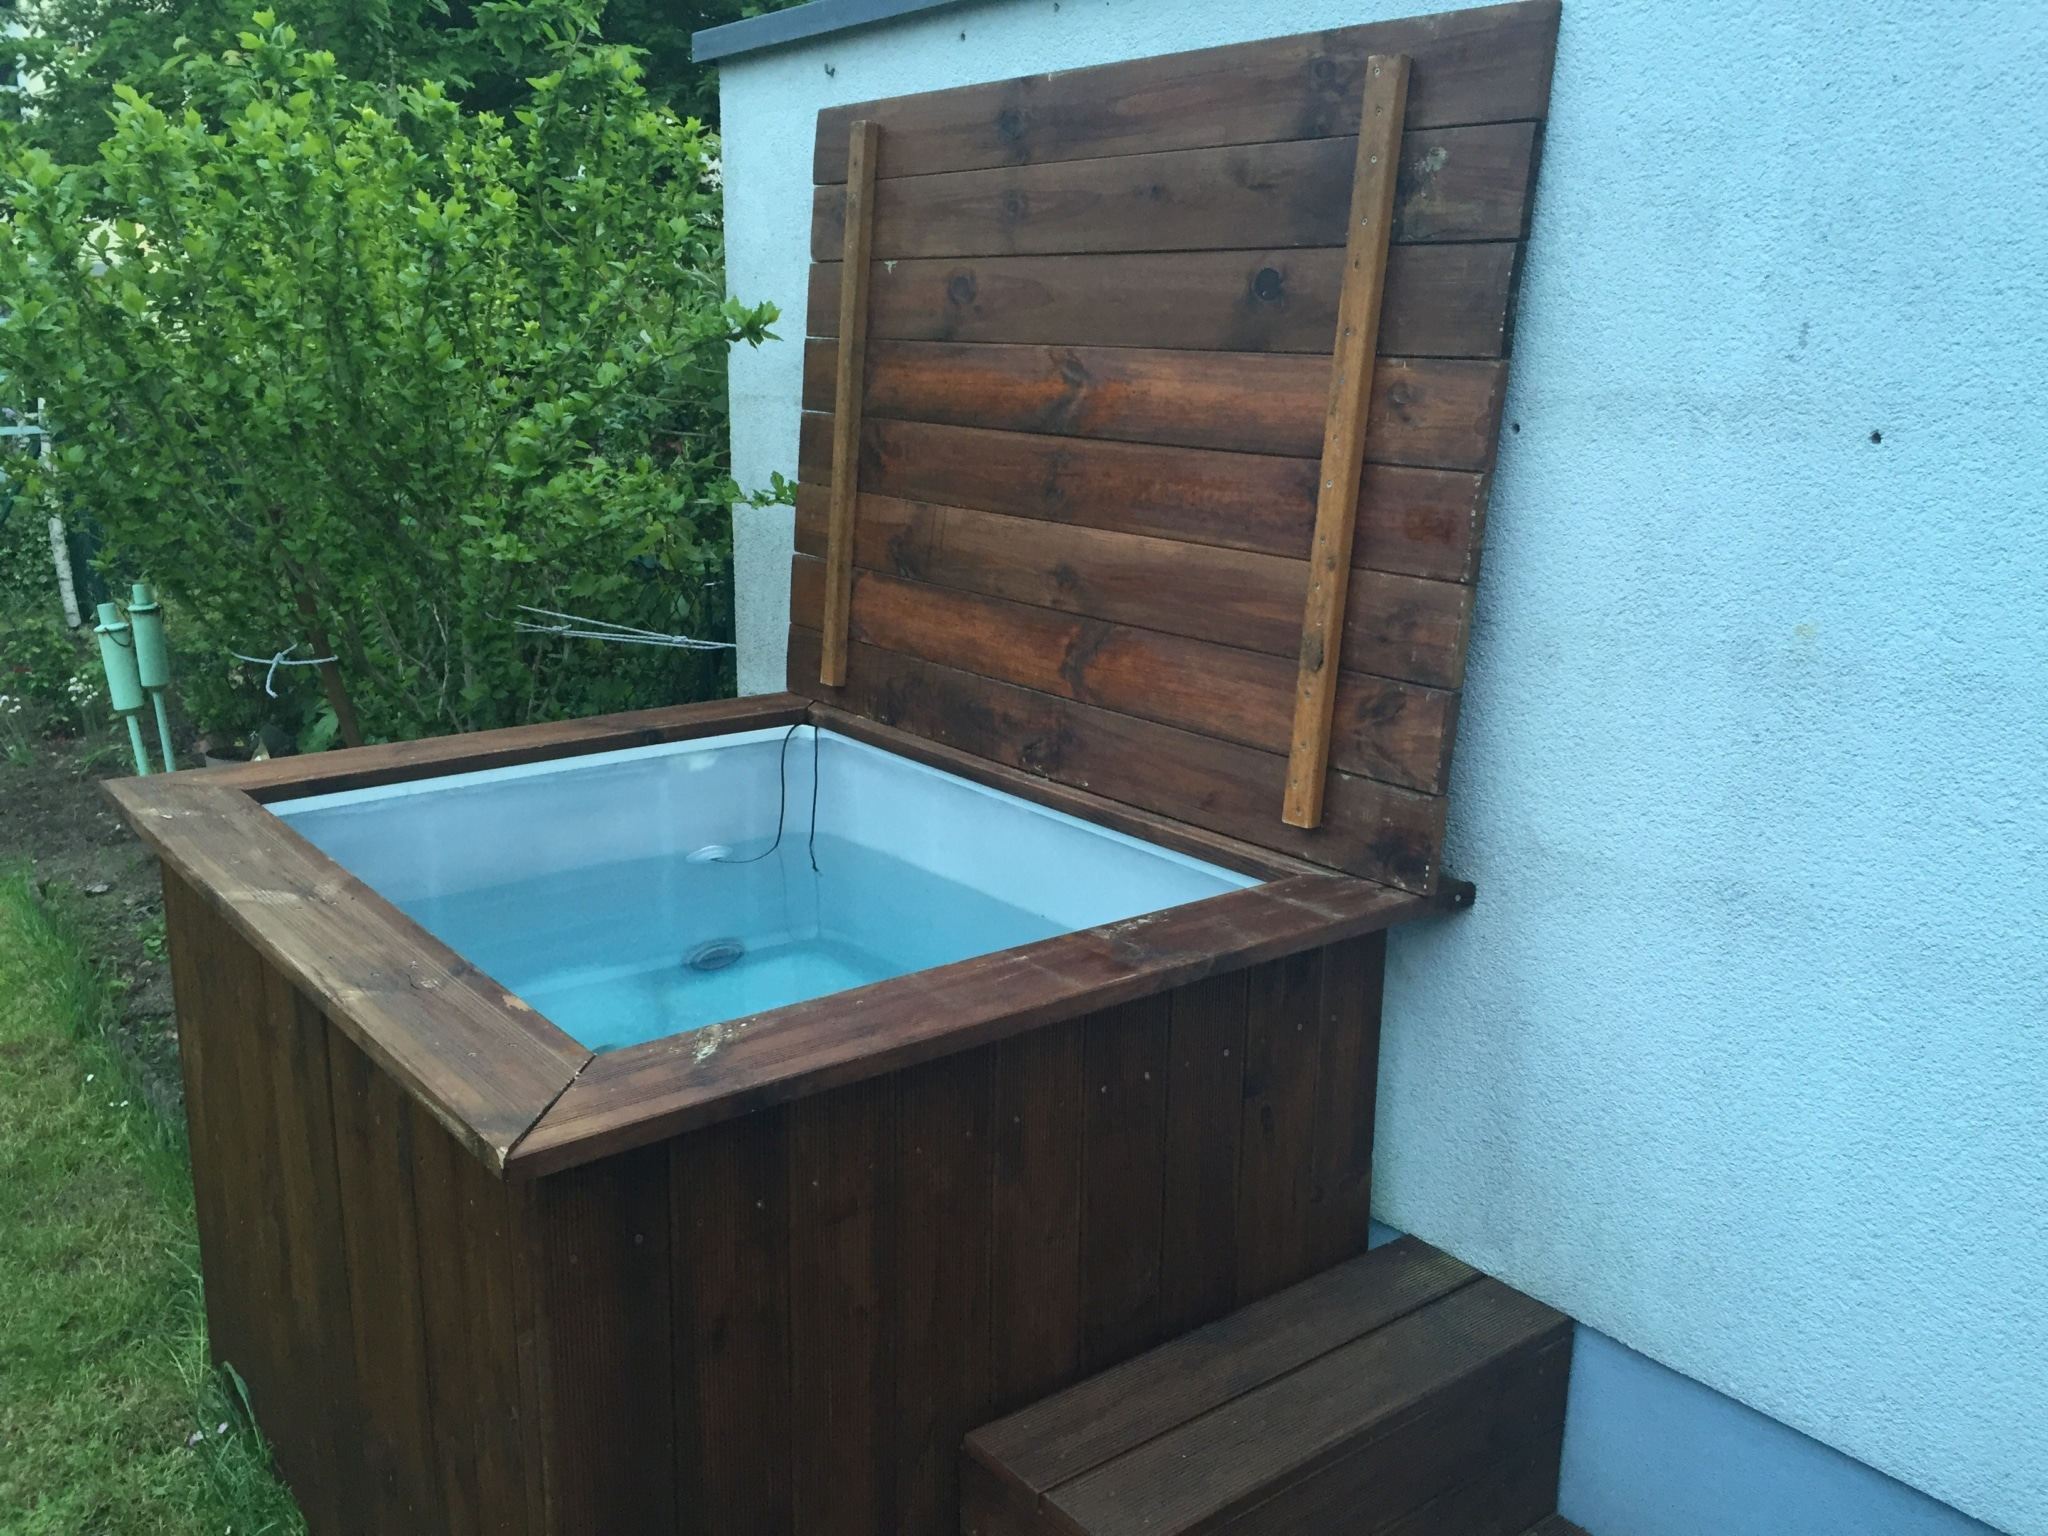 Diy whirlpool der deckel leckemojito you are on the woodway - Whirlpool eigenbau ...